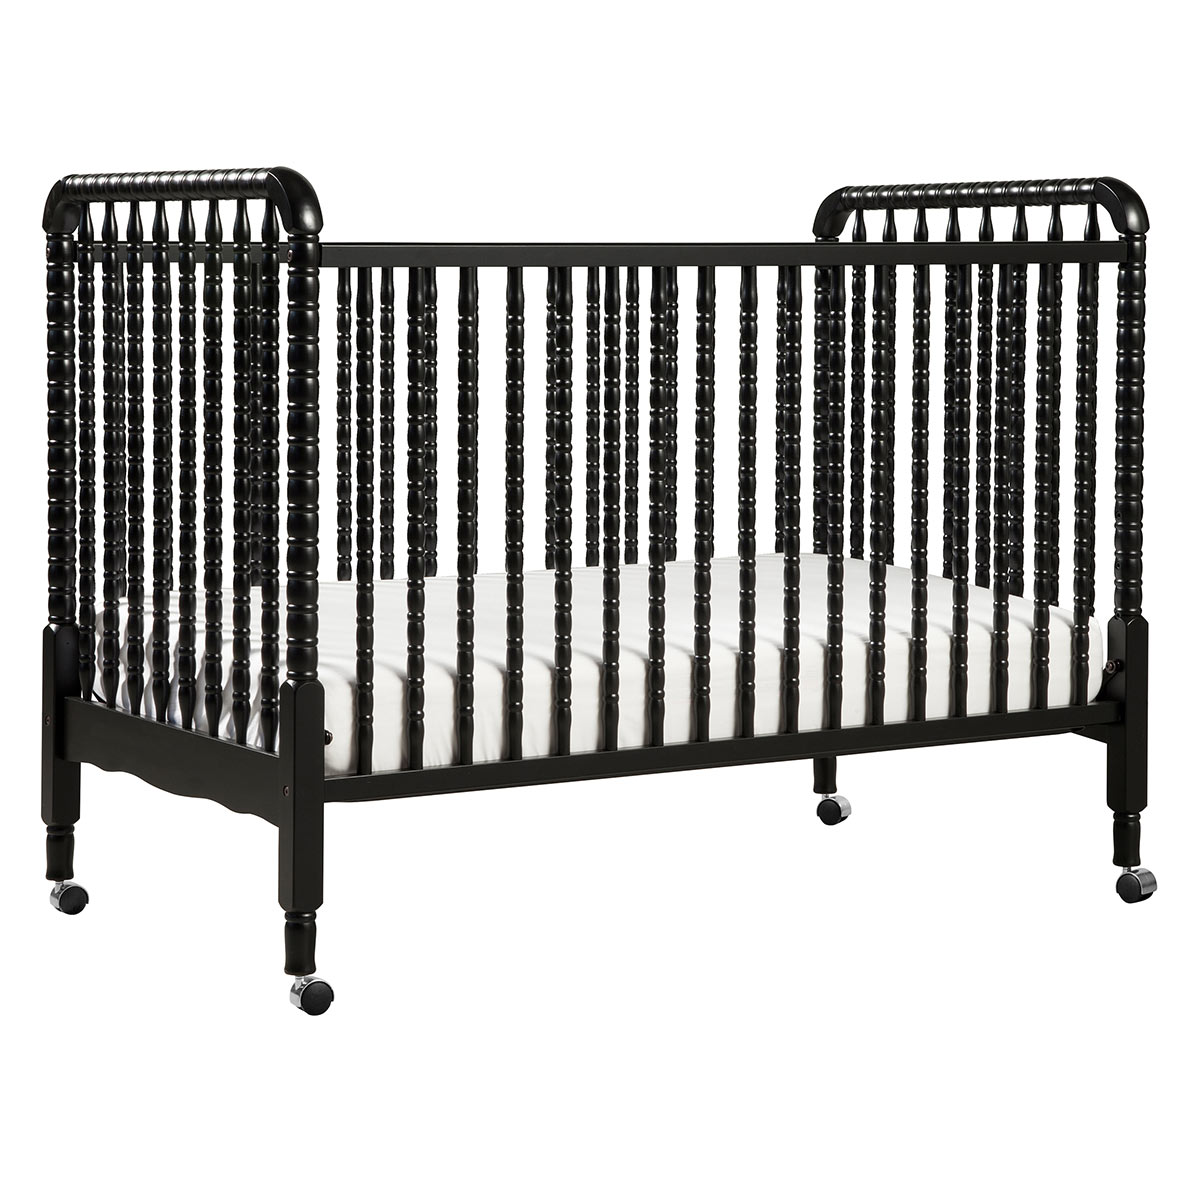 Contemporary white wooden jenny lind crib for your baby to sleep - Contemporary White Wooden Jenny Lind Crib For Your Baby To Sleep 32